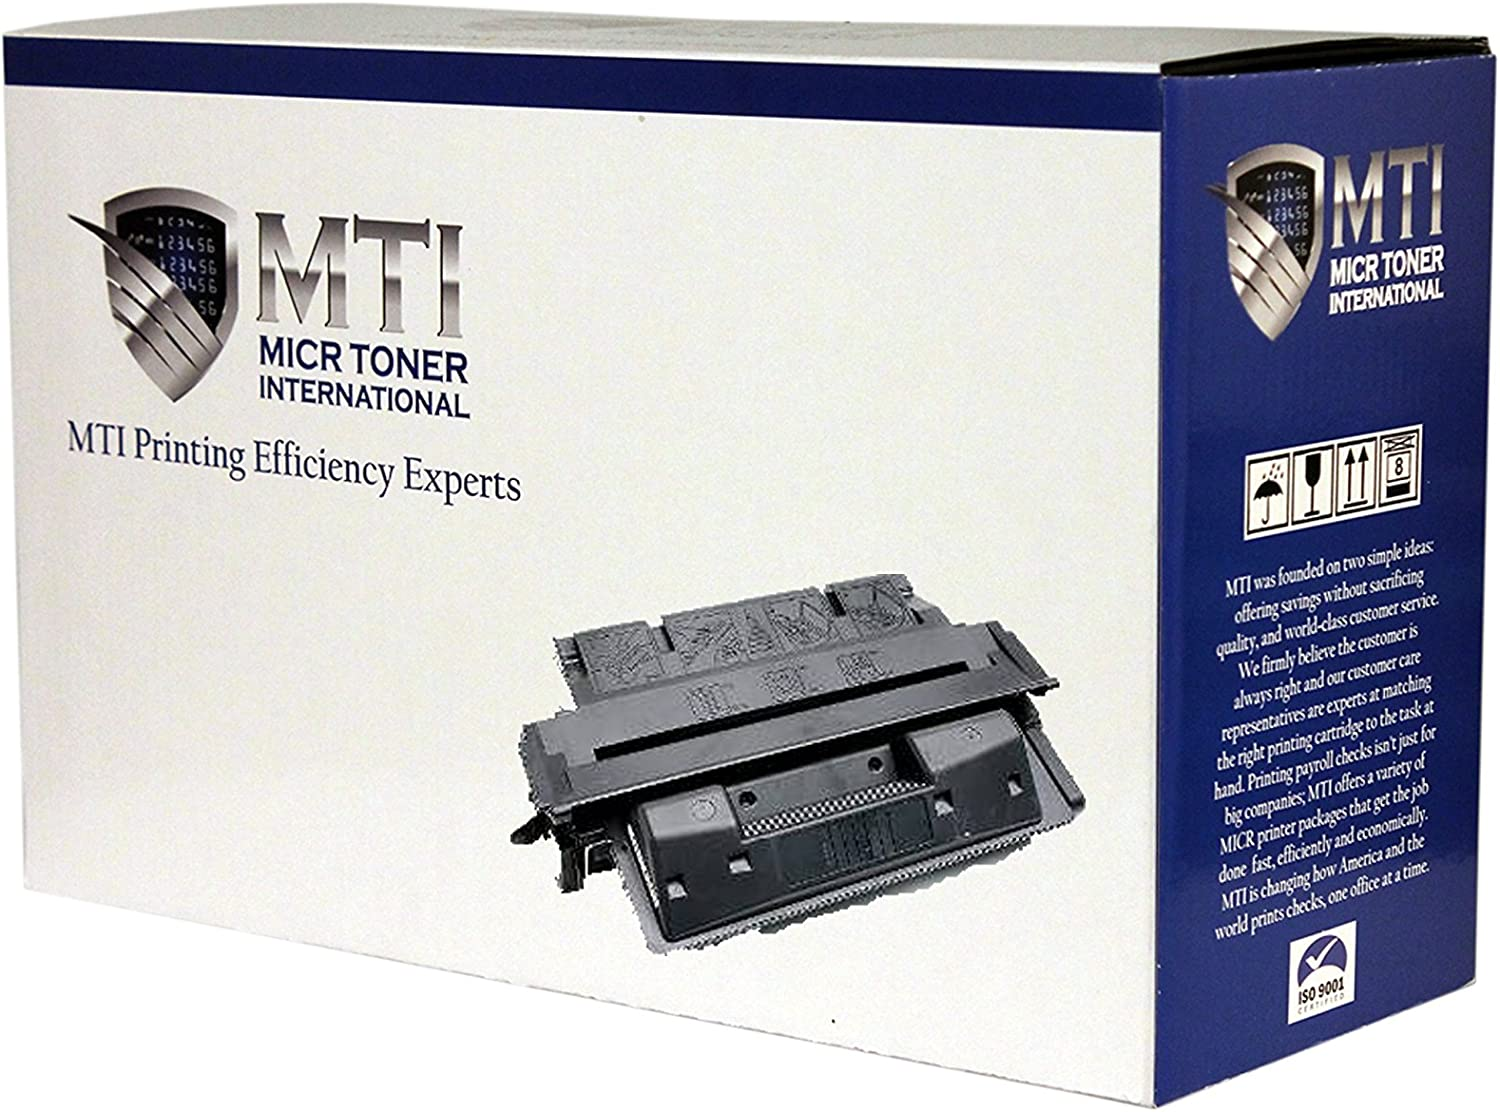 MICR Toner International Compatible Magnetic Ink Cartridge Replacement for HP 27X C4127X LaserJet 4000 4050